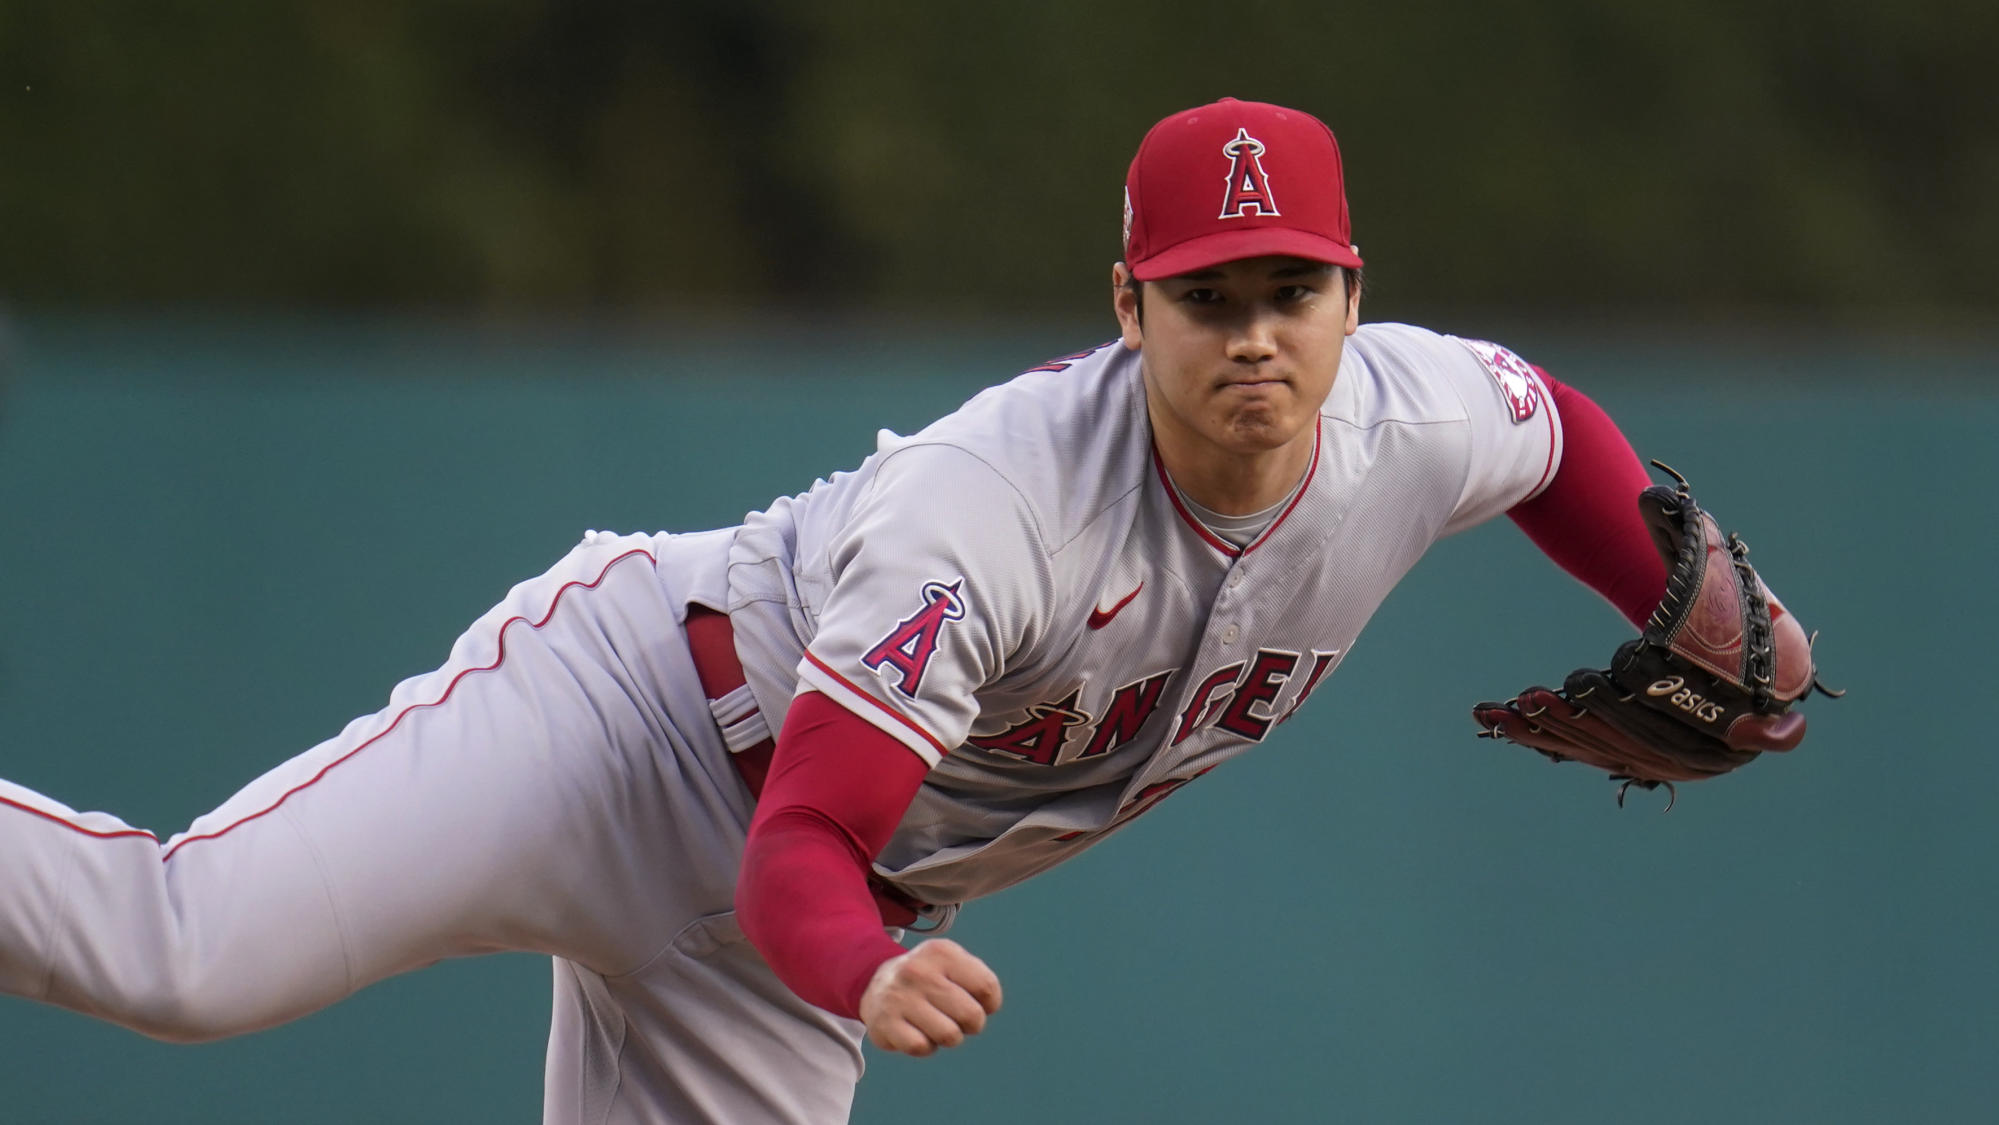 What did Shohei Ohtani do this week? Hit his 40th homer while pitching a gem